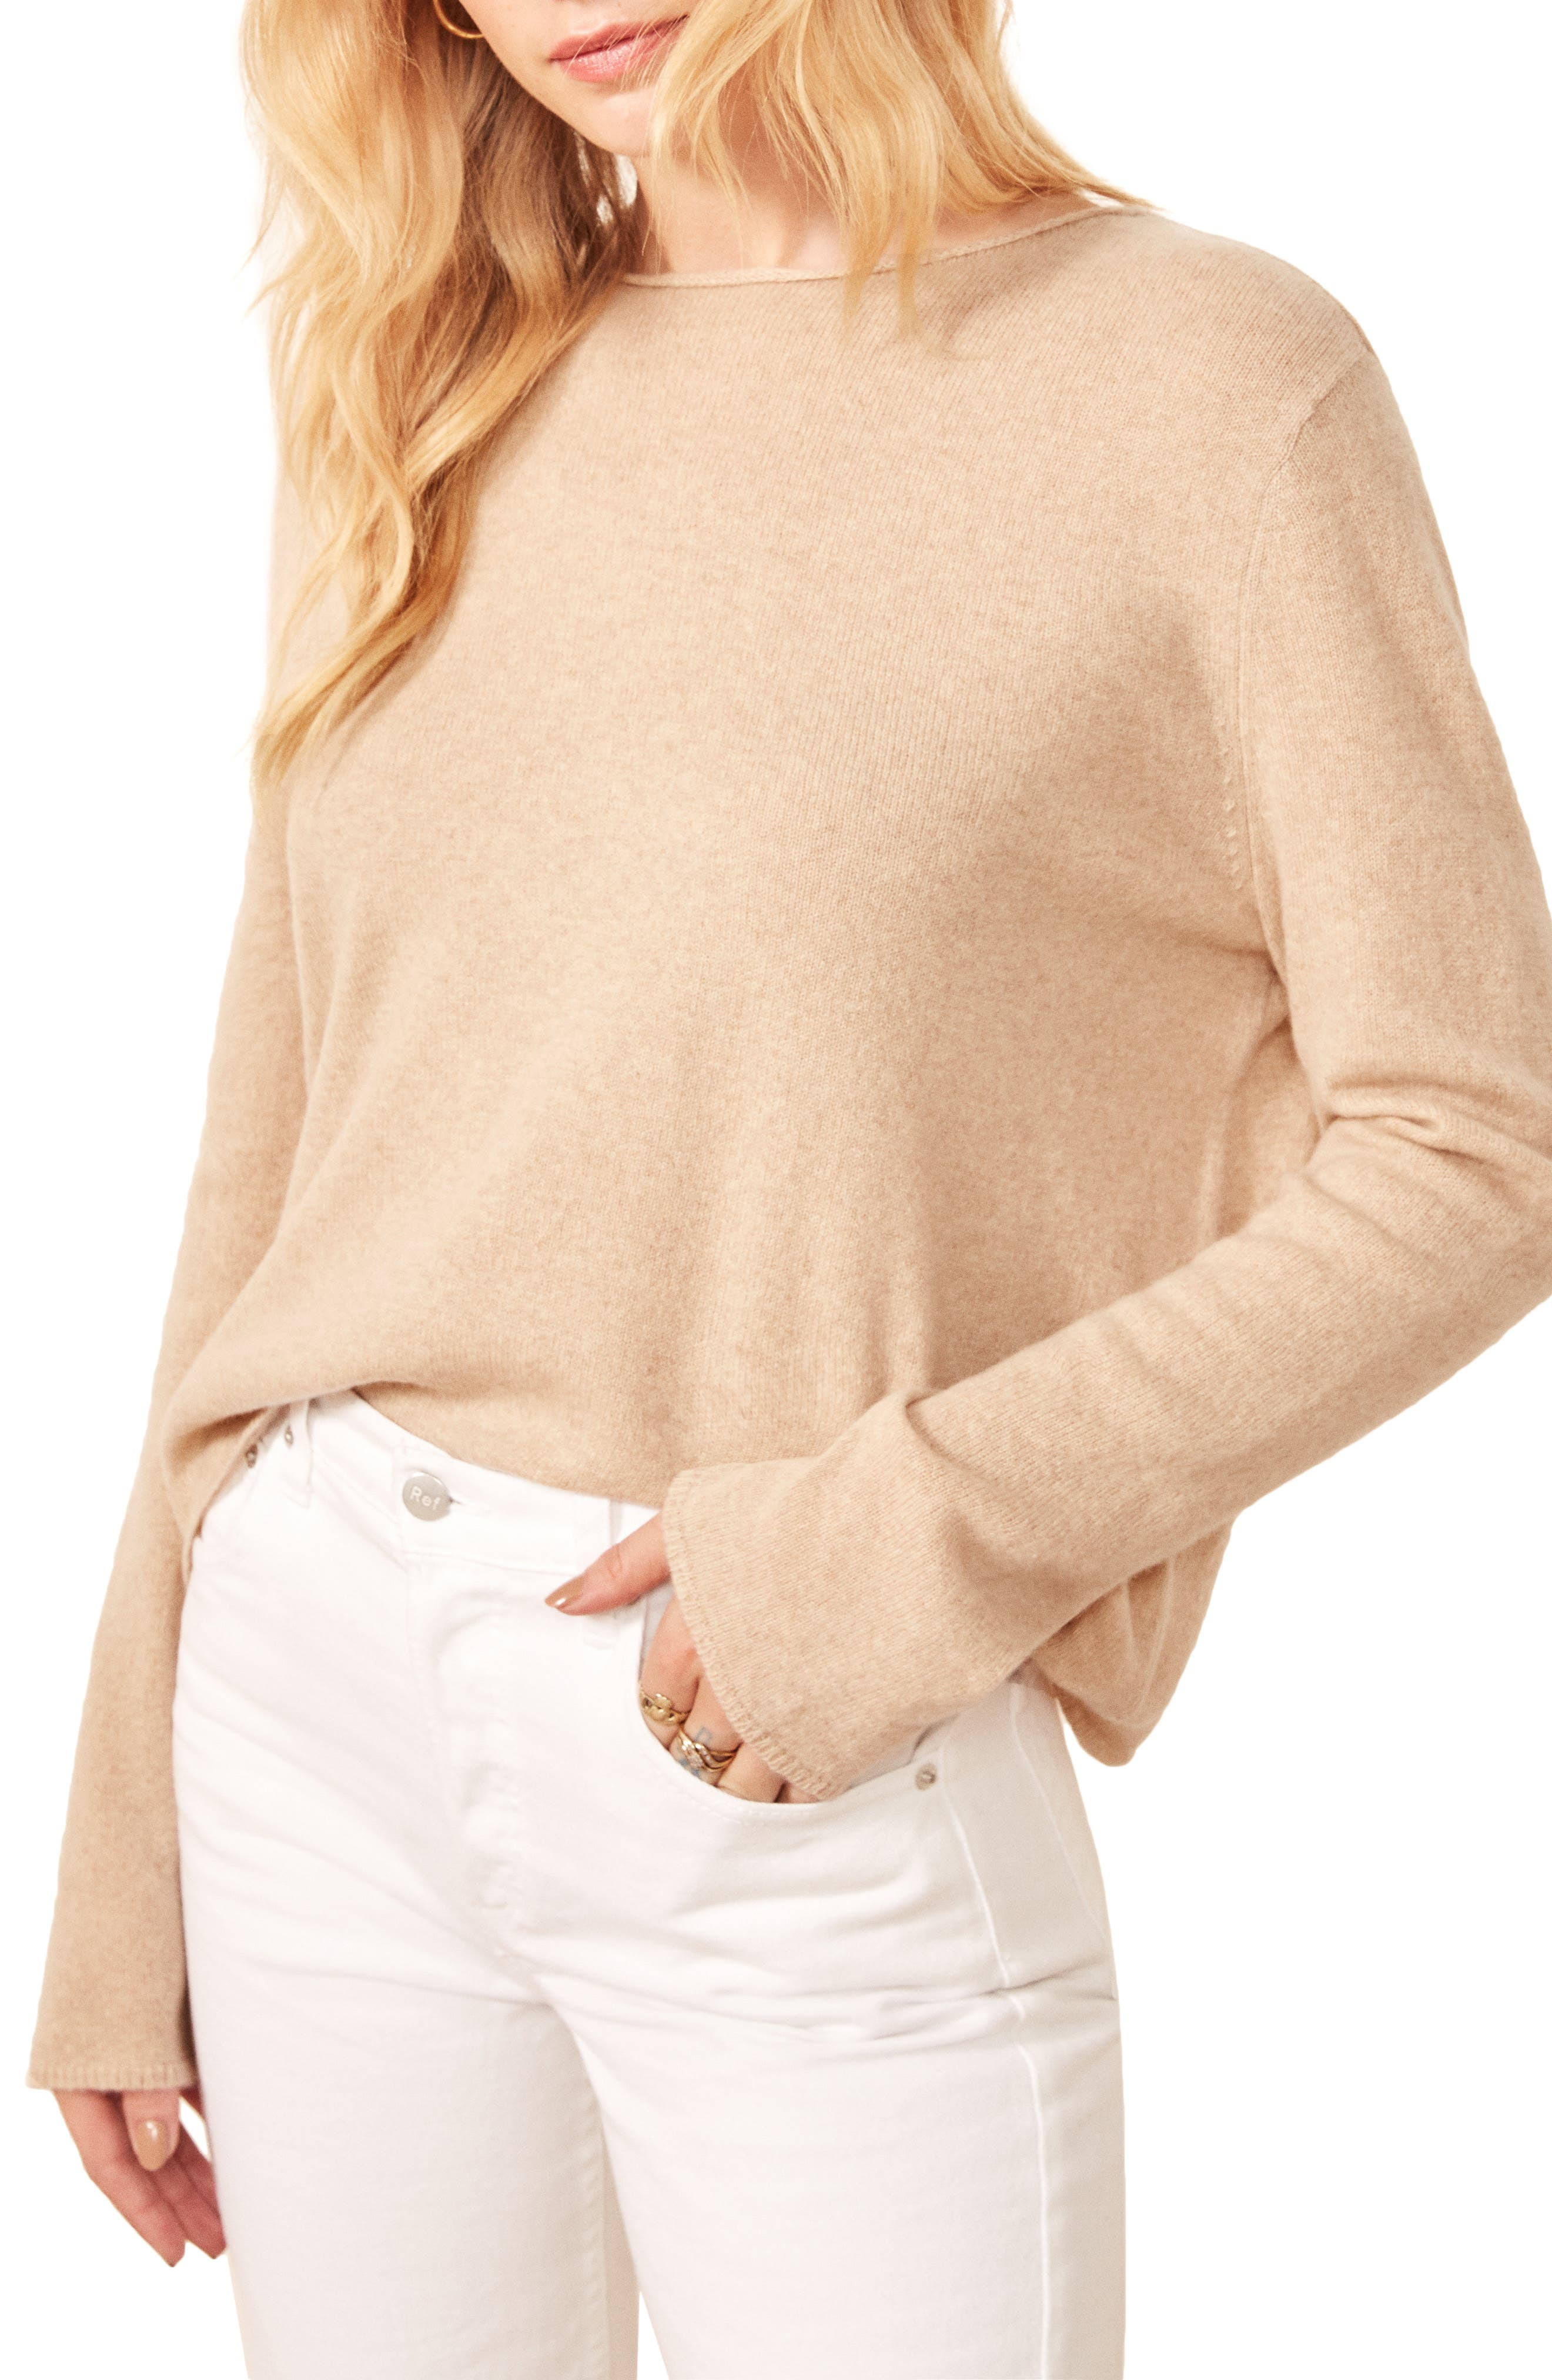 Made with recycled cashmere, this relaxed sweater is as cozy as it is eco-conscious. Style Name: Reformation Cashmere Blend Sweater. Style Number: 5920171. Available in stores.